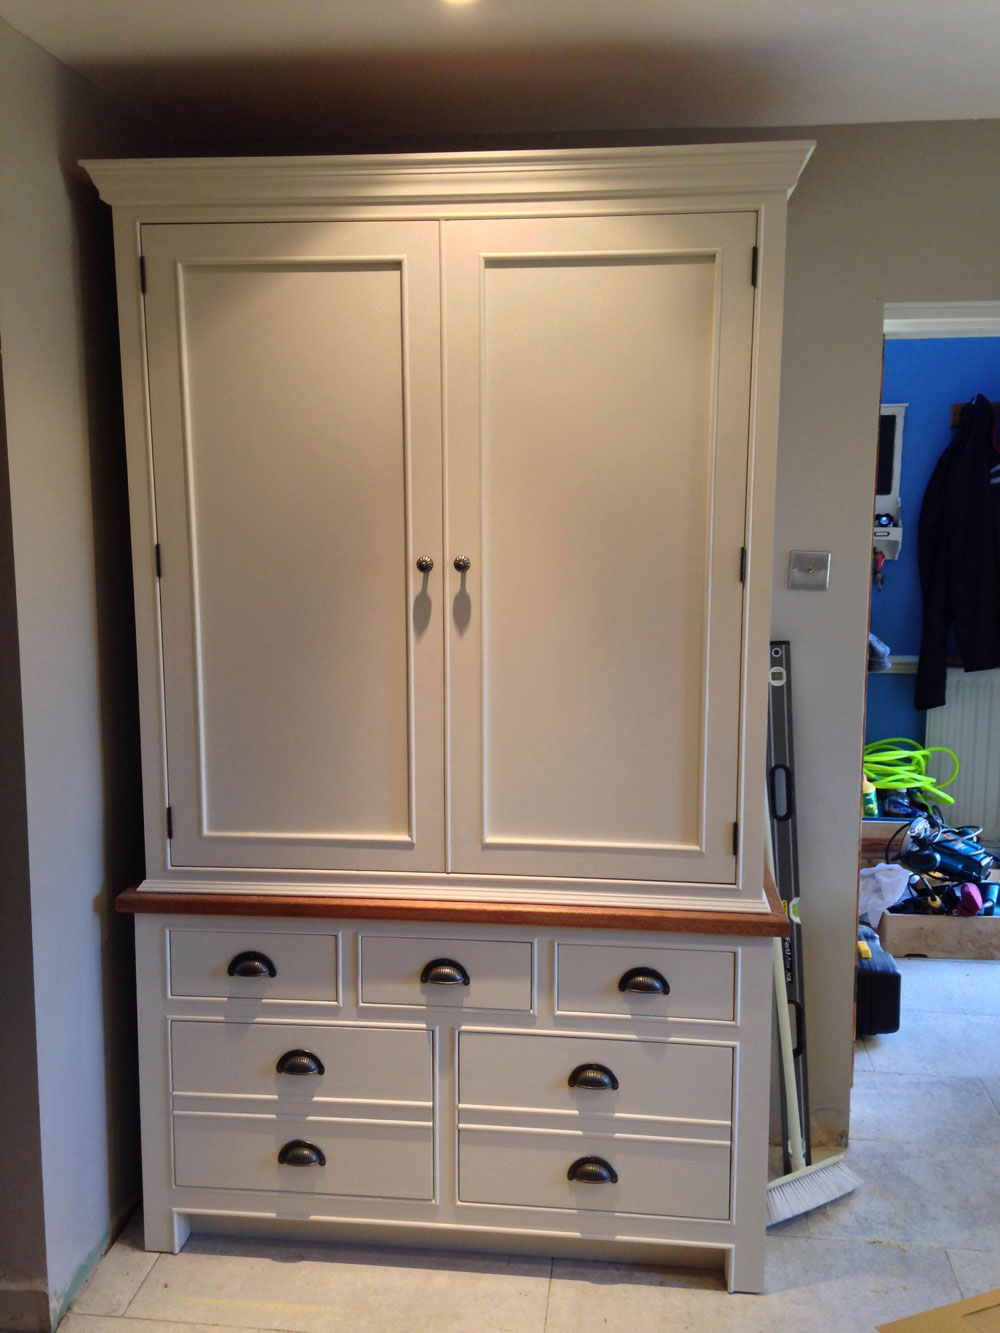 Living Room Cabinets Kitchen Larder Cabinets - Wolds Furniture Company